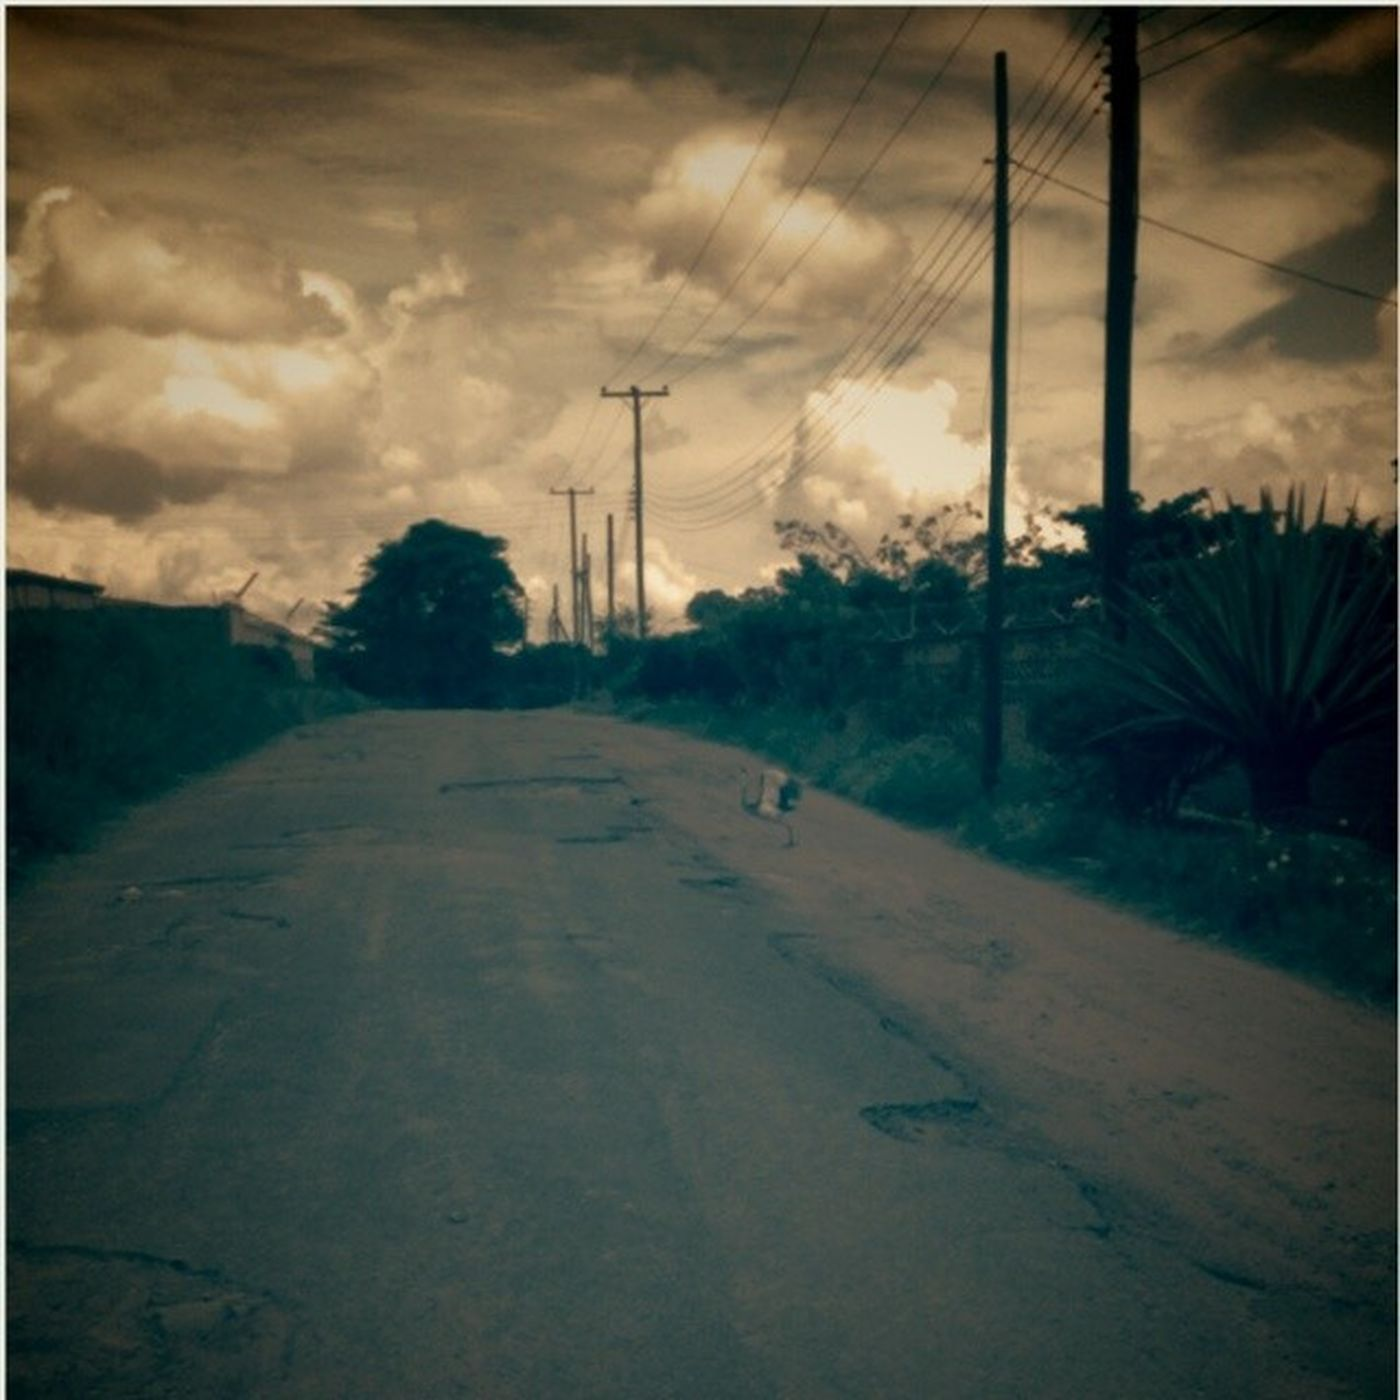 My amatuer attempt at photography and yes that is Blantyre, Malawi Photography Art Artistic DzyneArtz Lonelyroad Blantyre Malawi